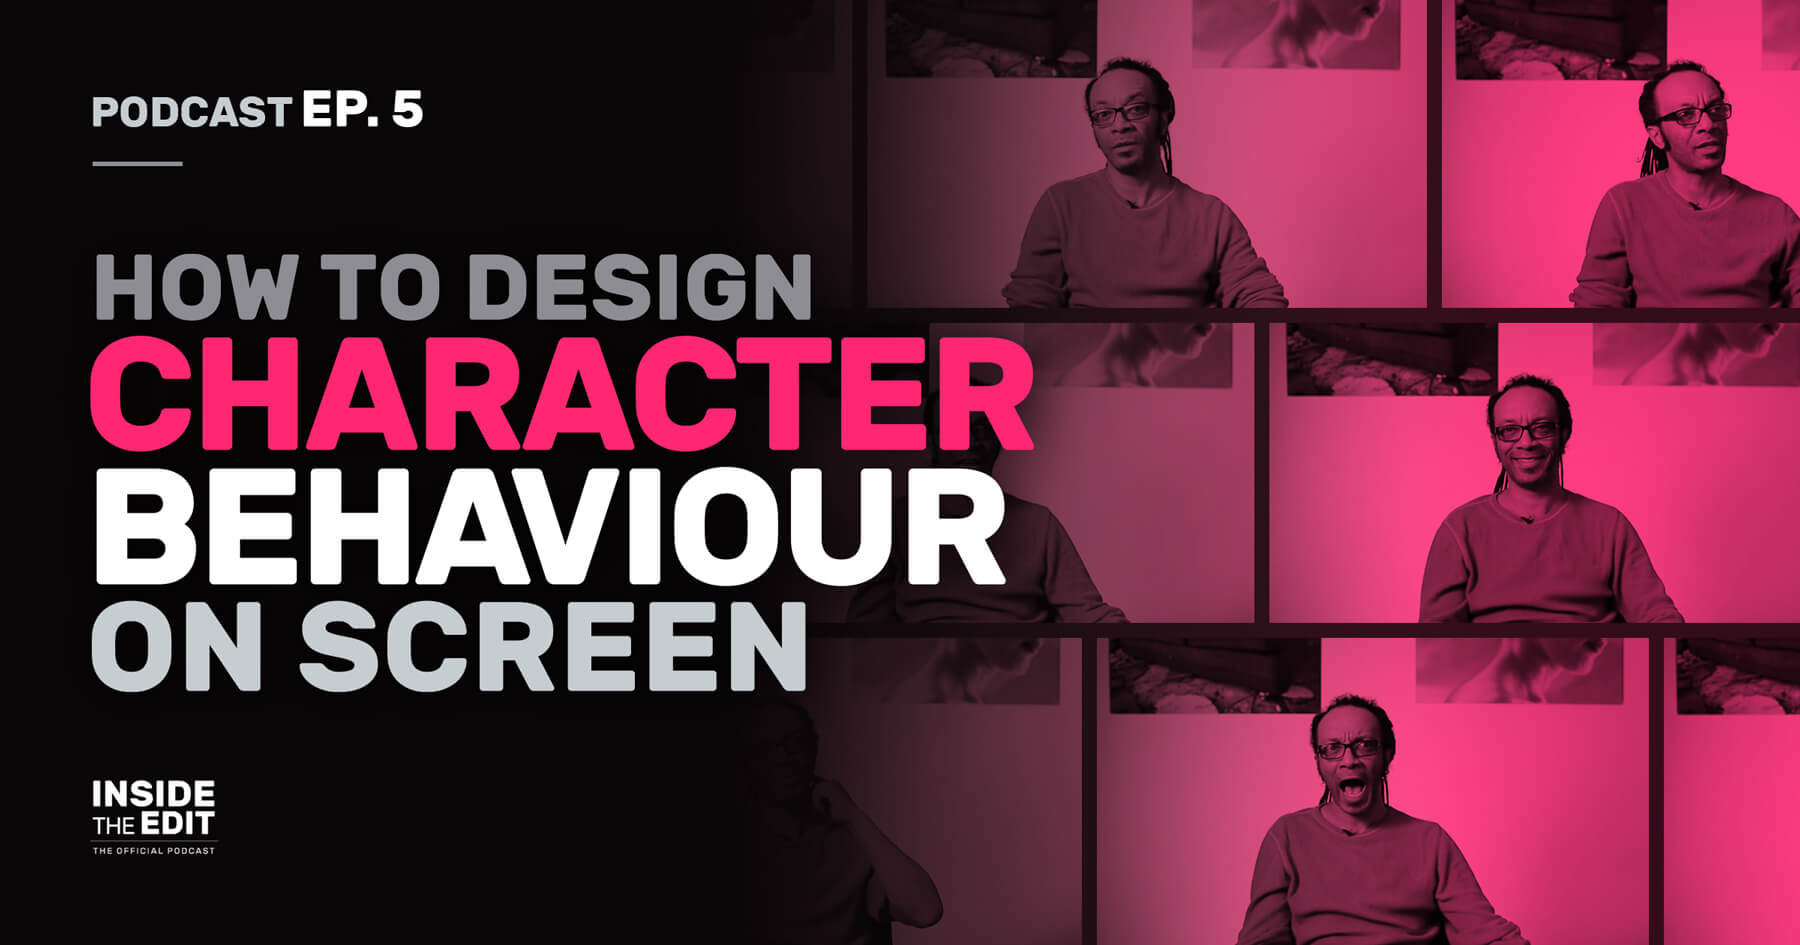 How to Design Character Behaviour on Screen